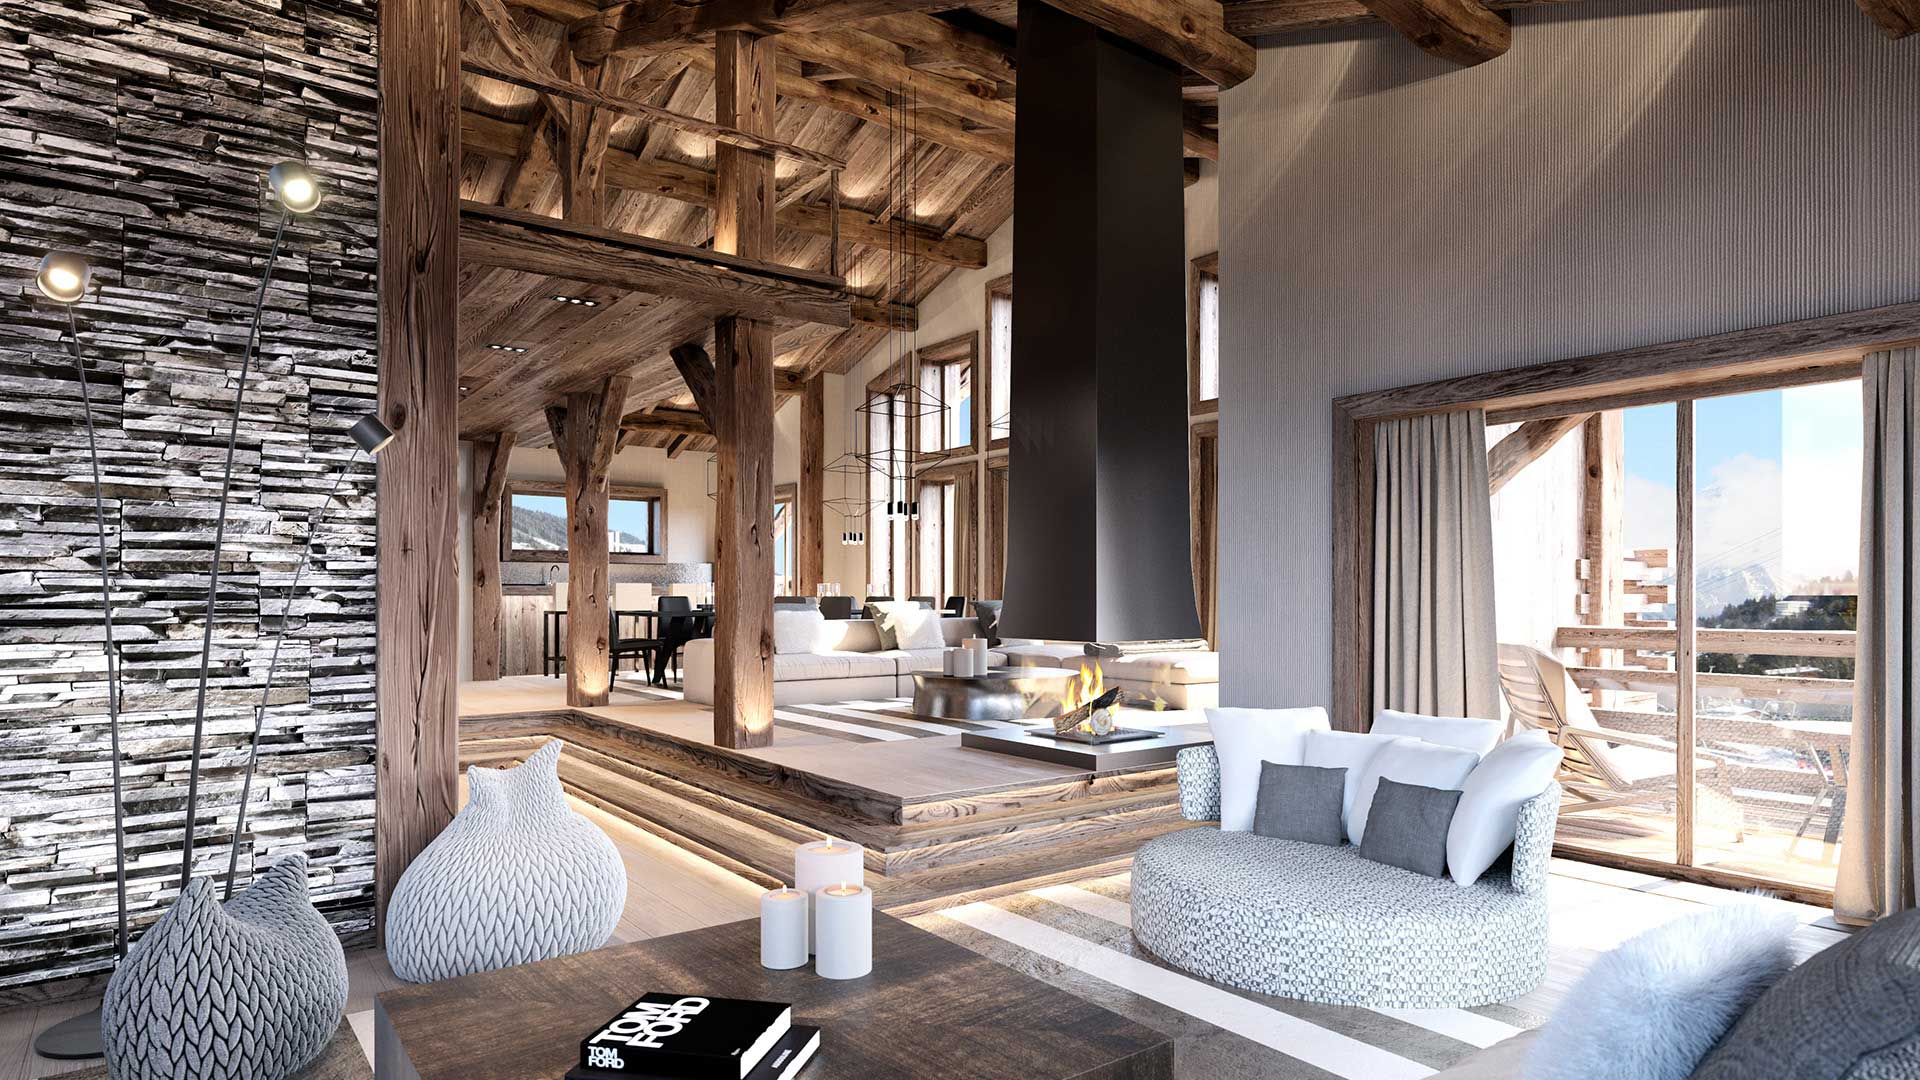 3D Rendering of an architectural project of the living room of a chalet in the mountains.